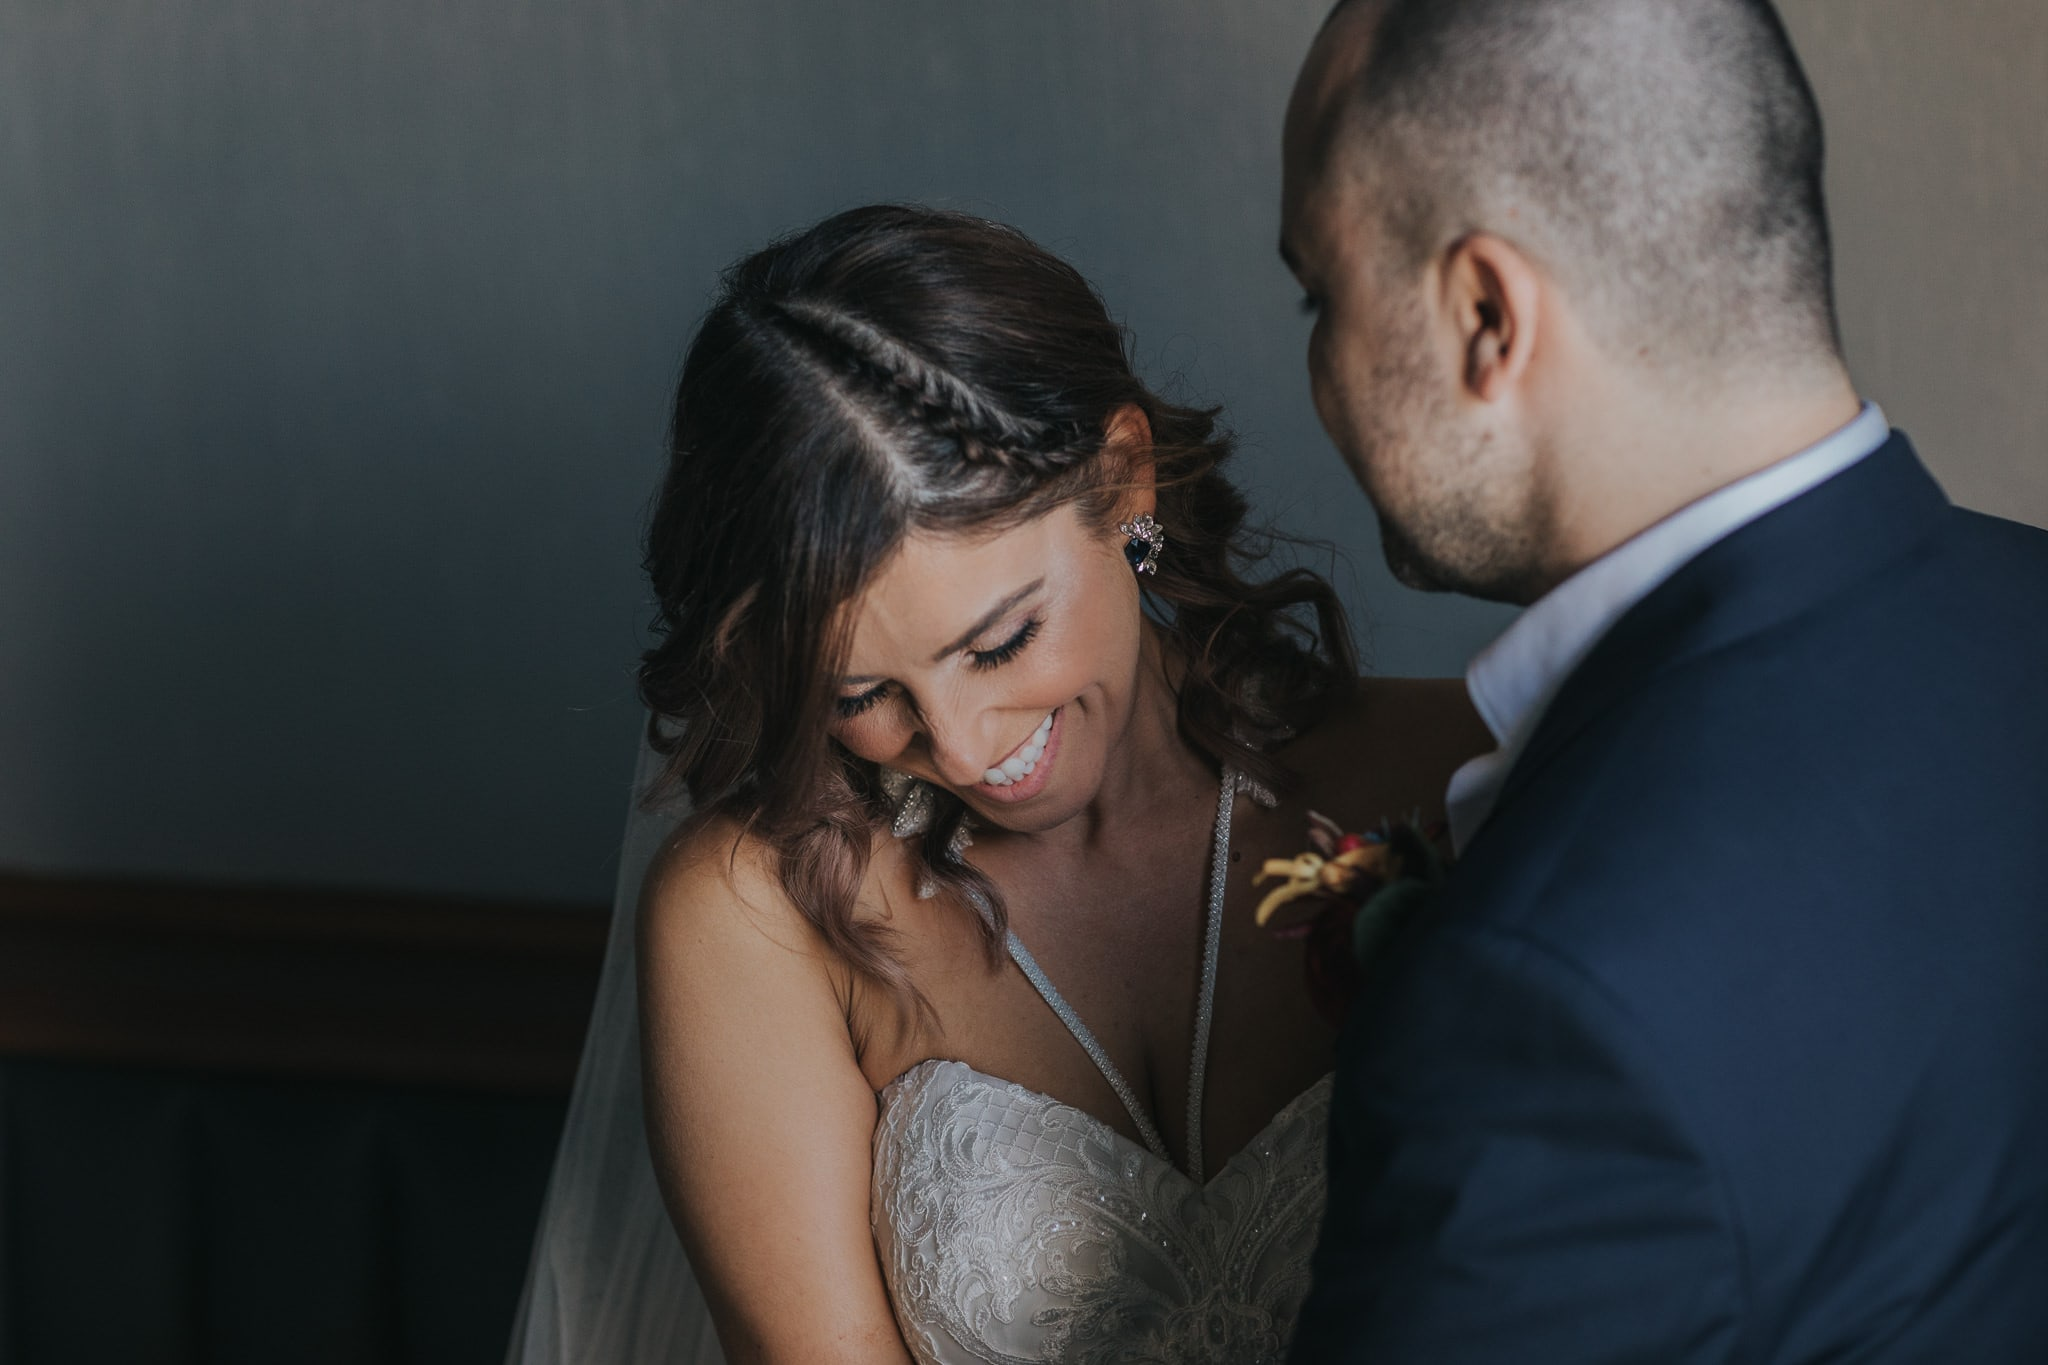 Photographing emotion and fun at weddings - unposed